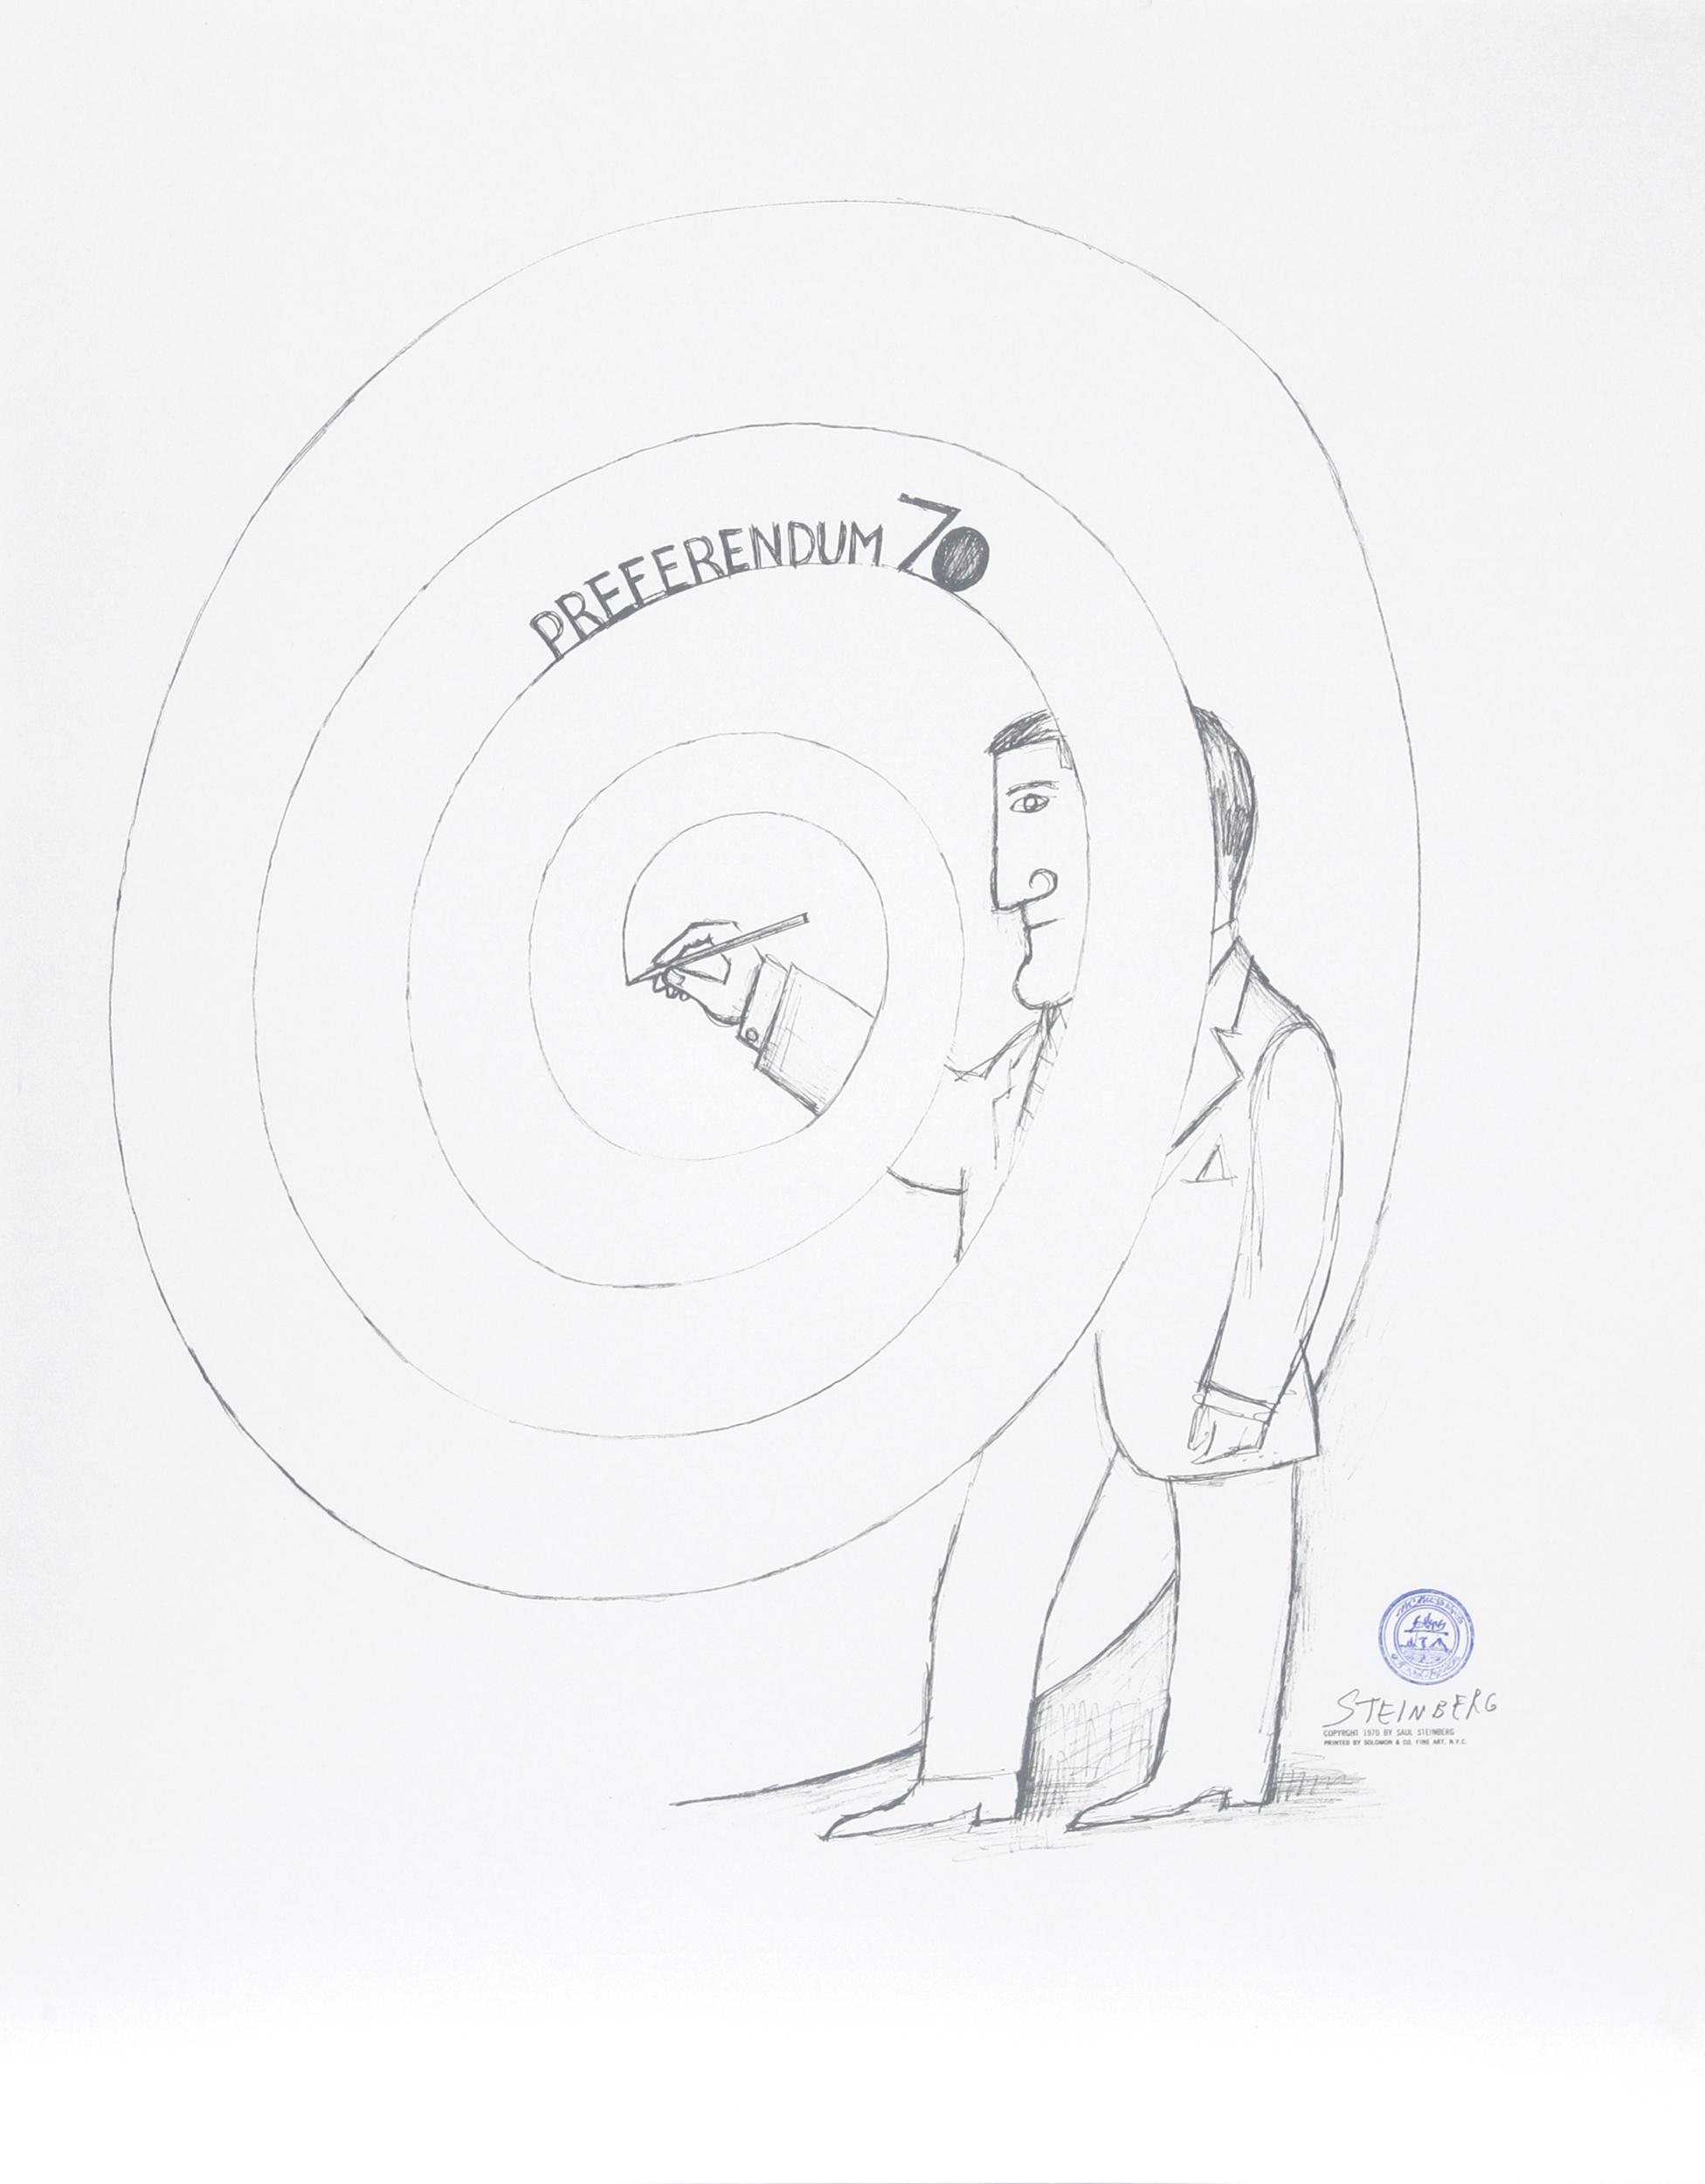 Saul Steinberg, Preferendum 70, Lithograph, ink stamped